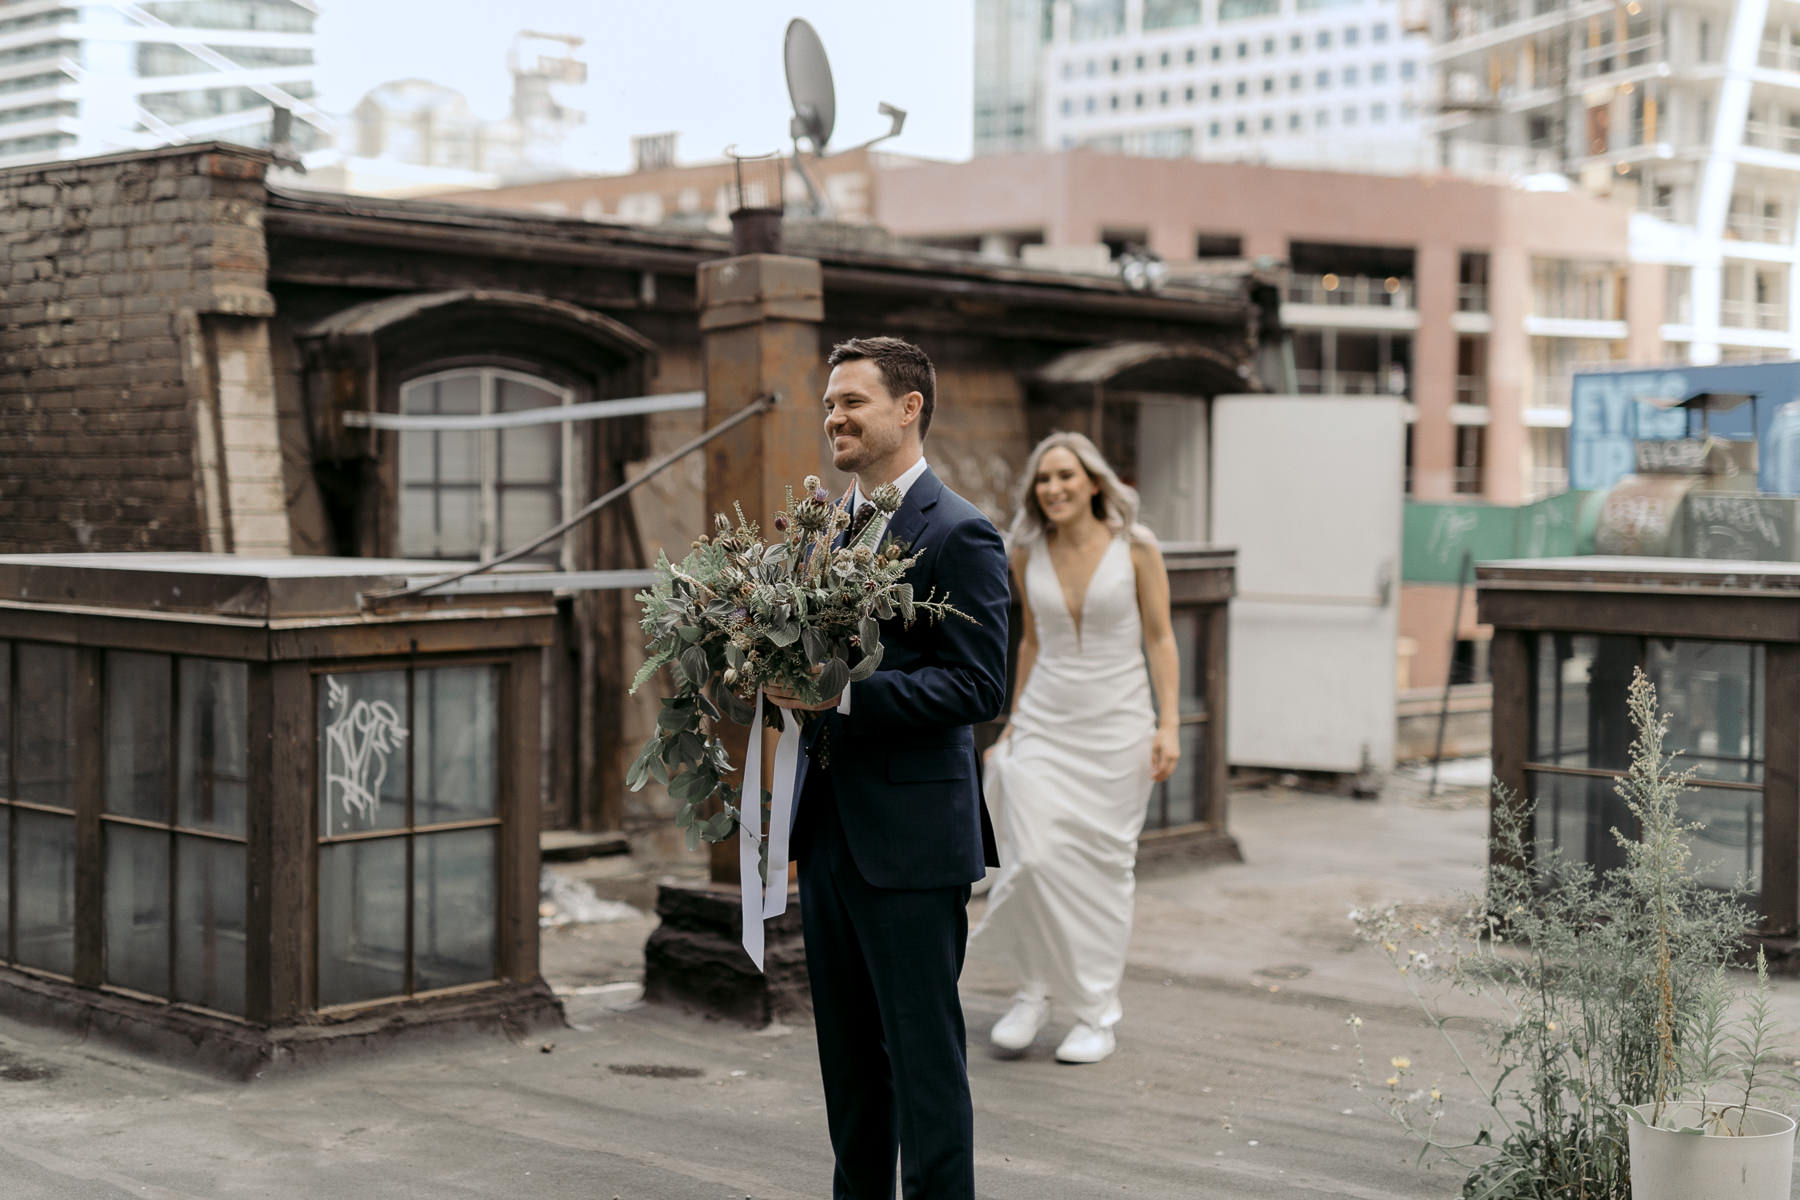 First Look Photograph of Bride & Groom